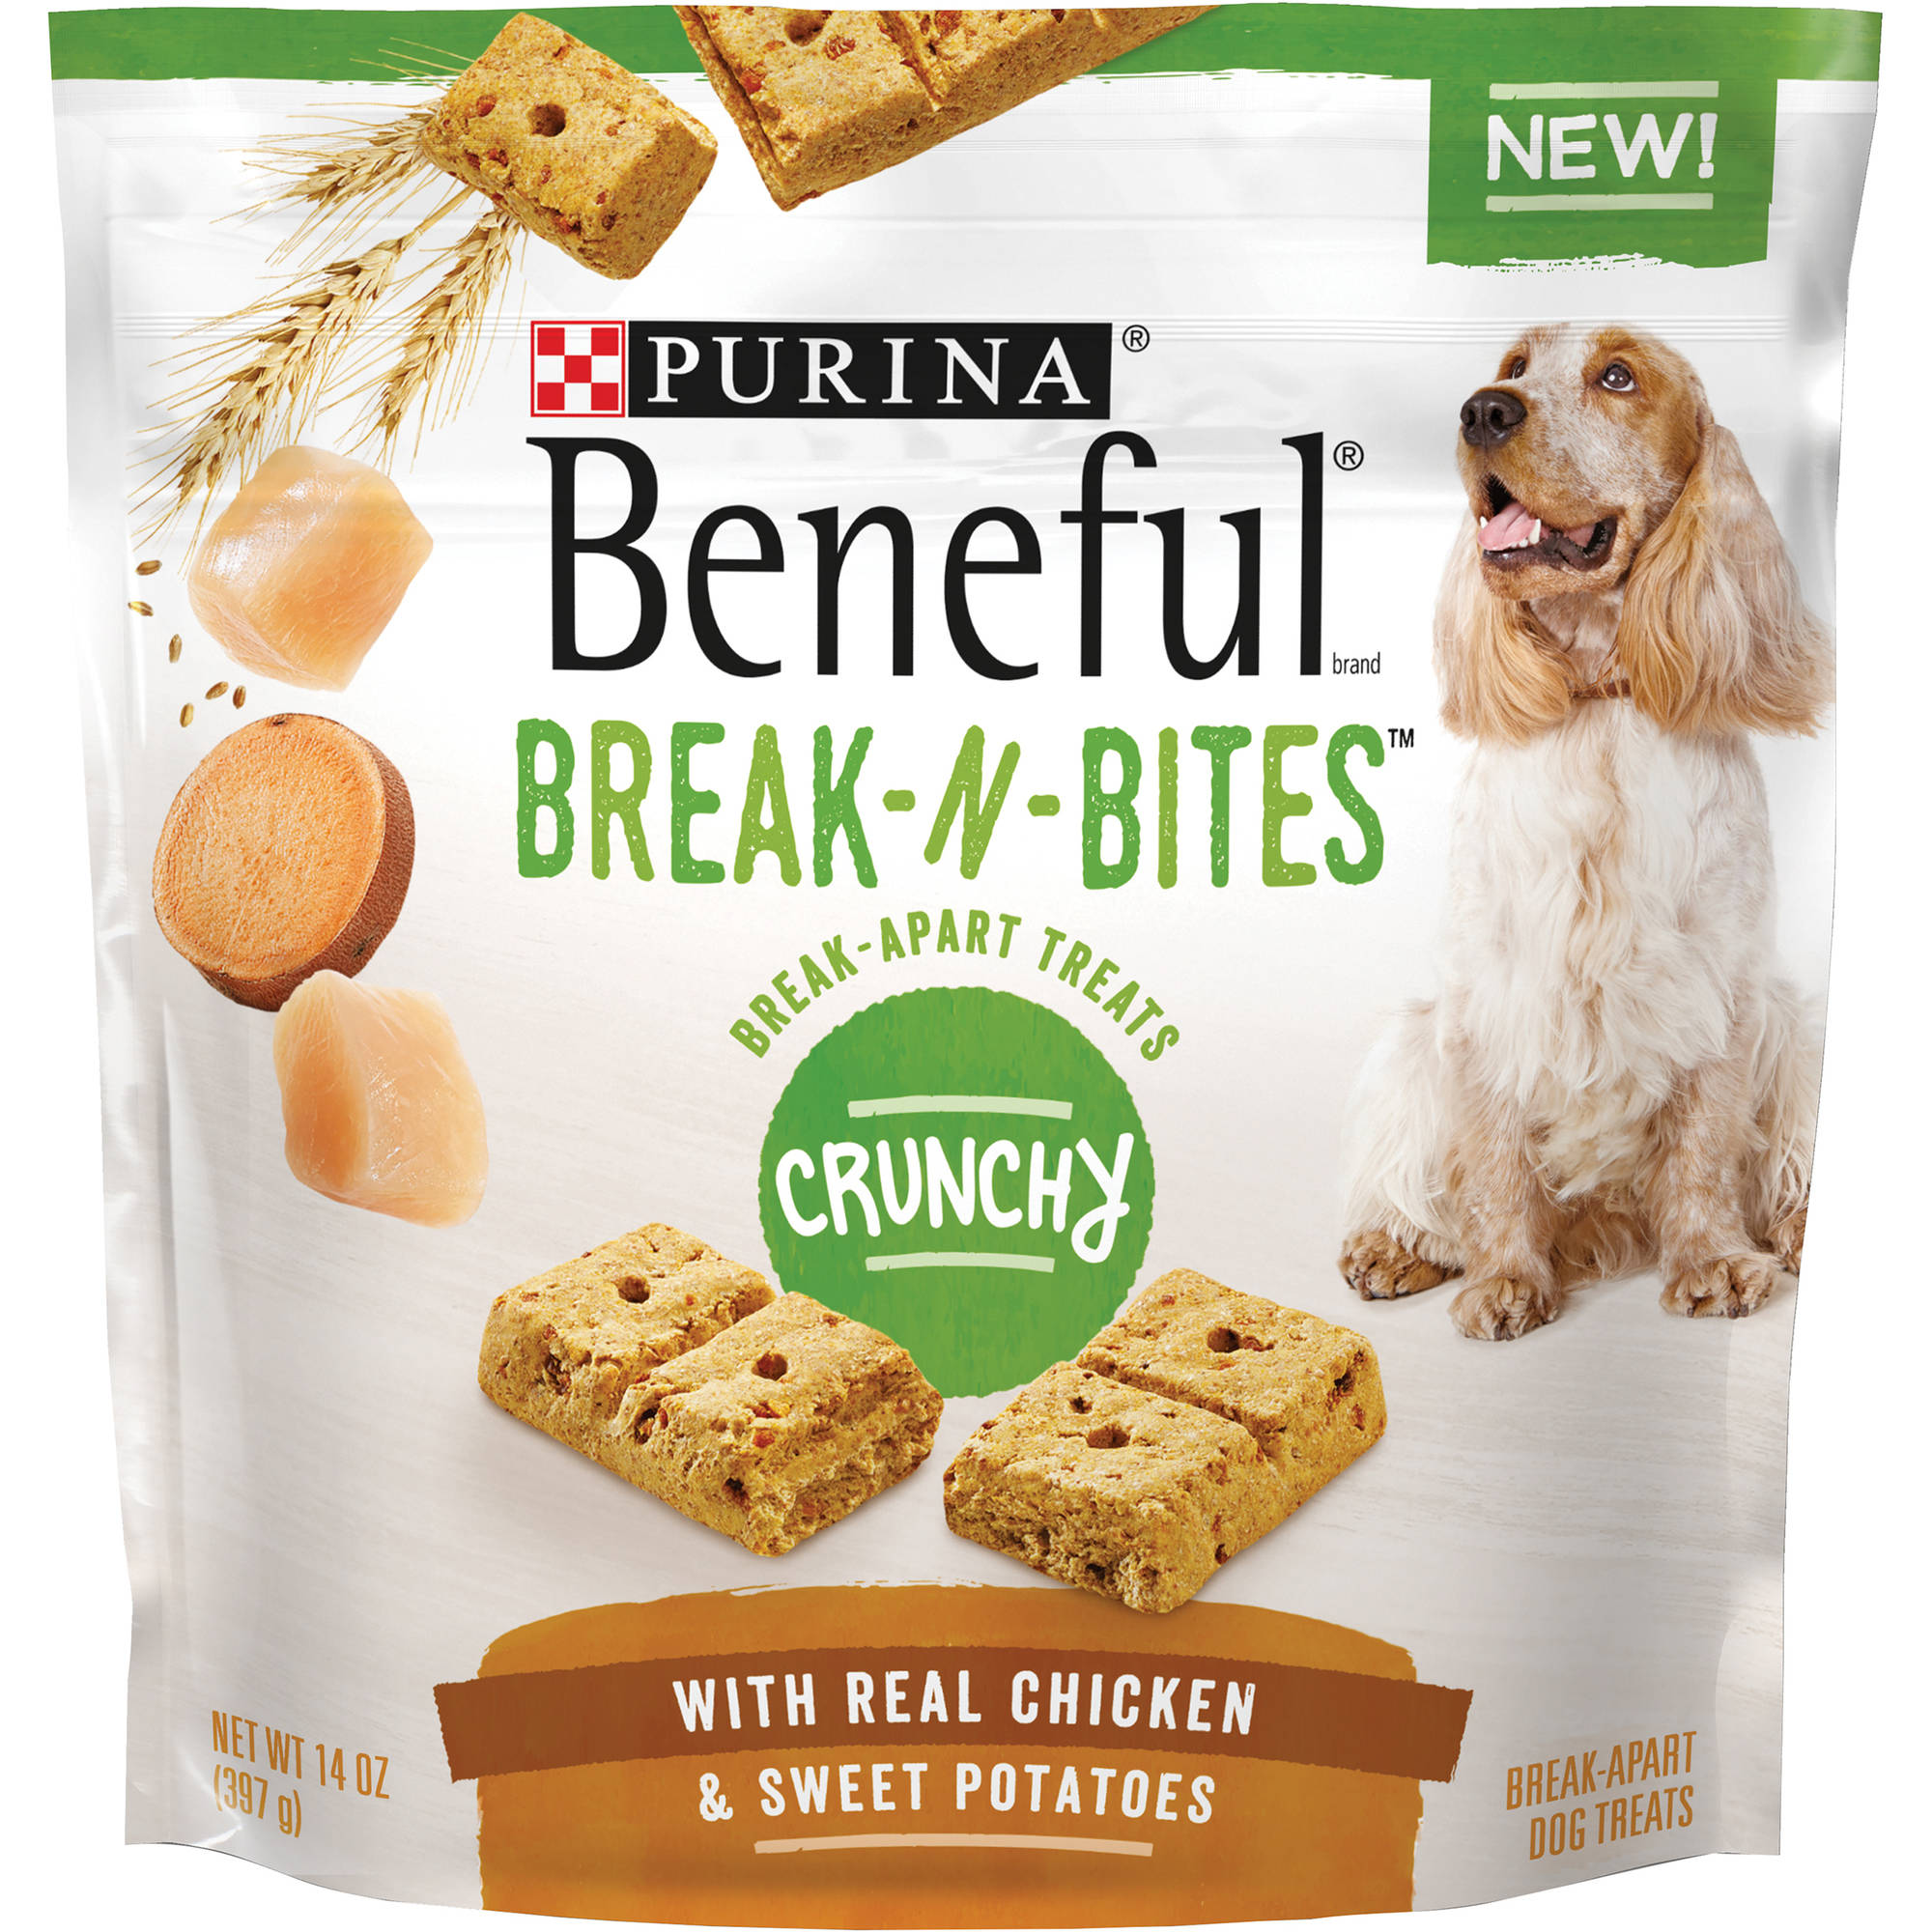 Purina Beneful Break-N-Bites Crunchy With Real Chicken & Sweet Potatoes Dog Treats 14 oz. Pouch